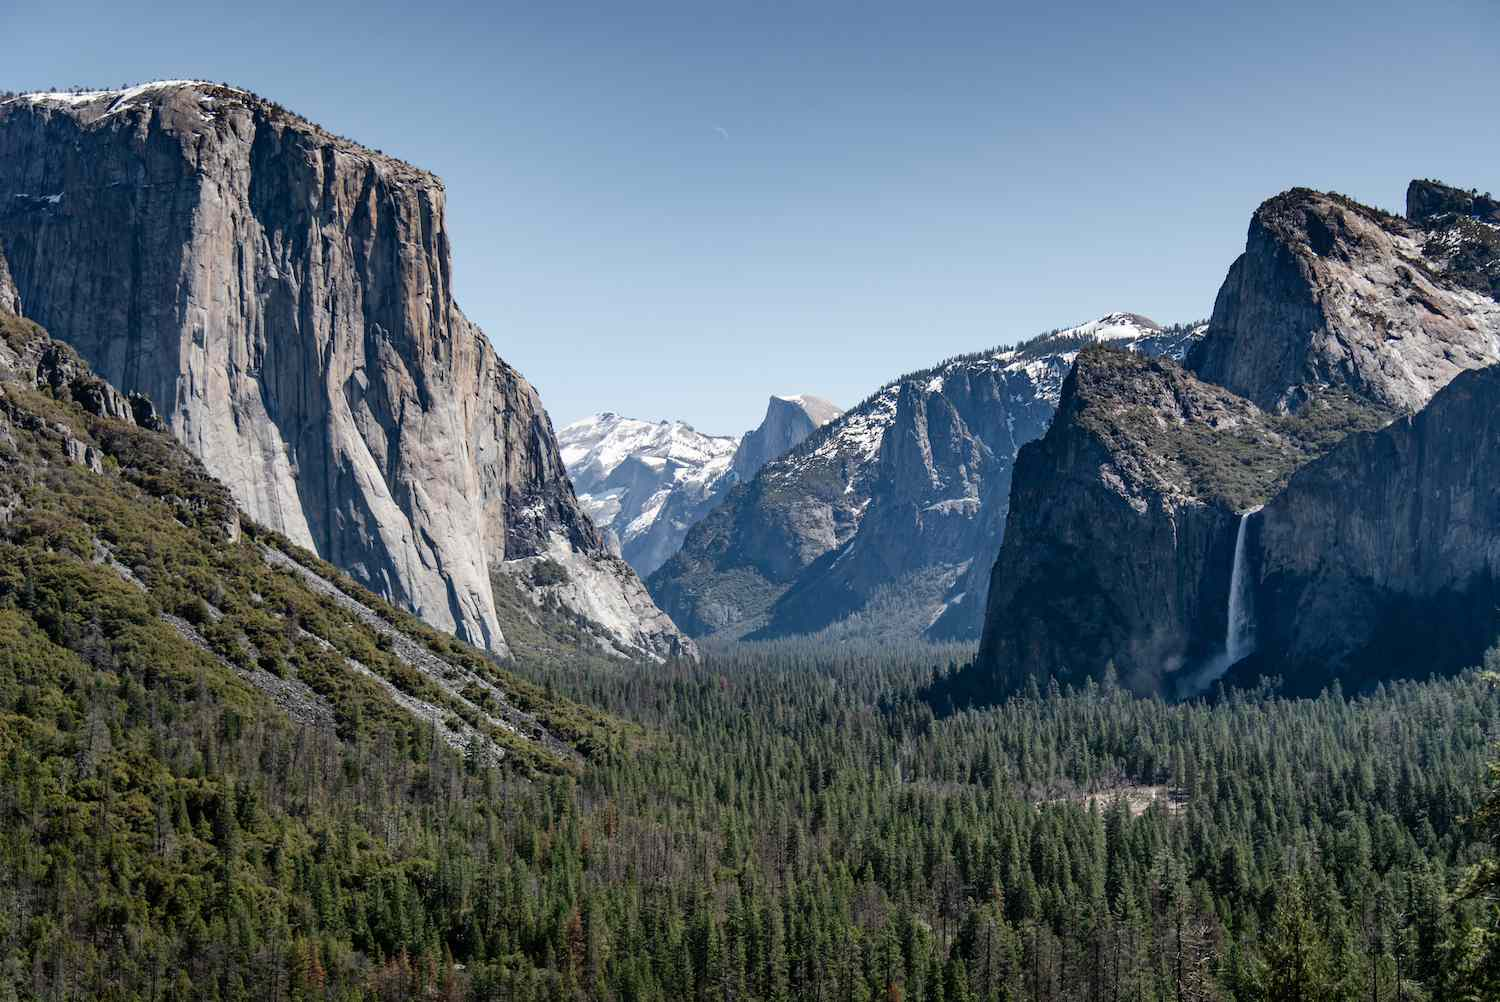 El Capitan rises above the evergreen forests of Yosemite National Park